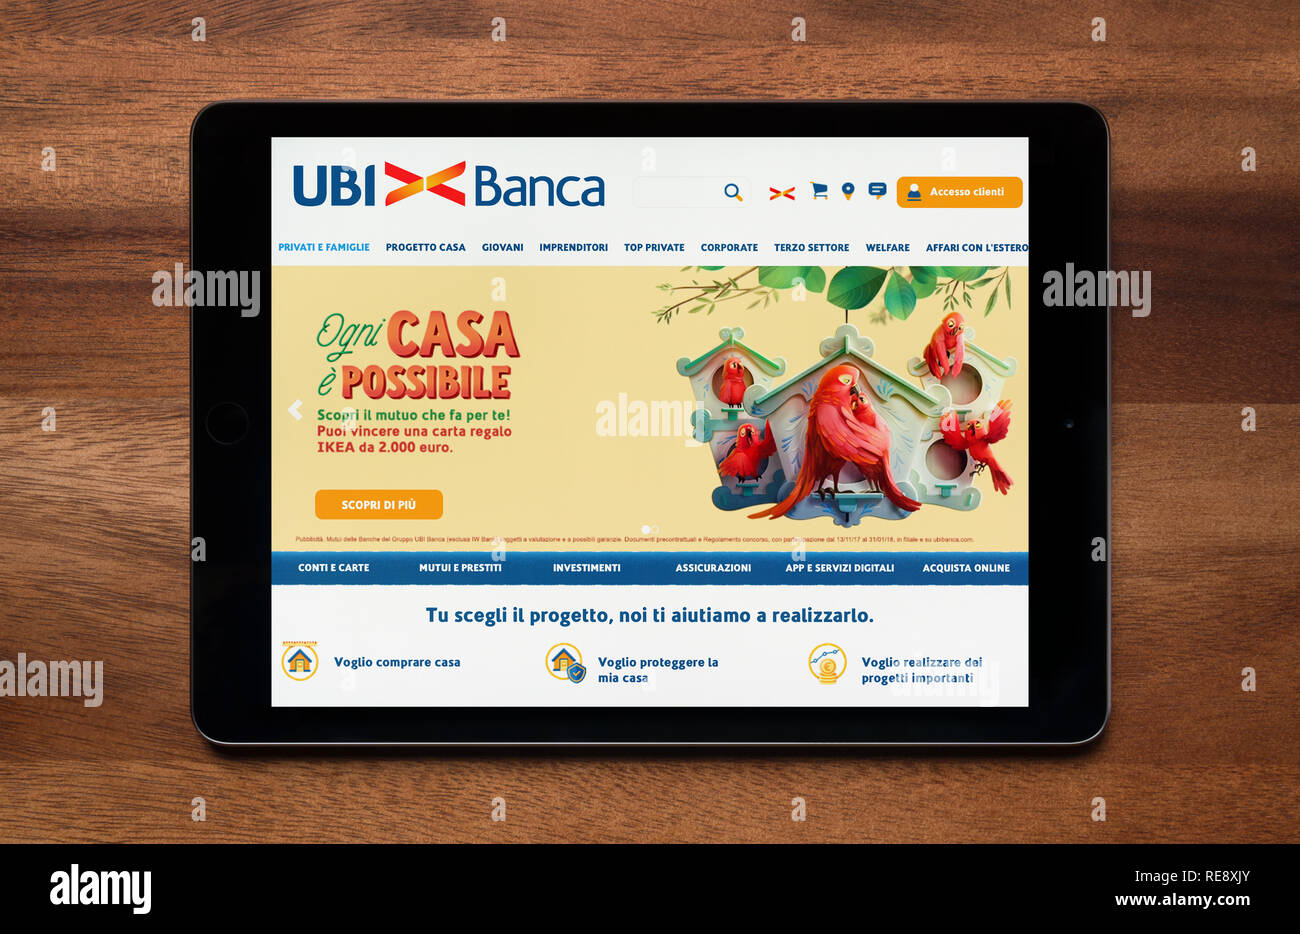 The website of Uni Banca is seen on an iPad tablet, which is resting on a wooden table (Editorial use only). - Stock Image